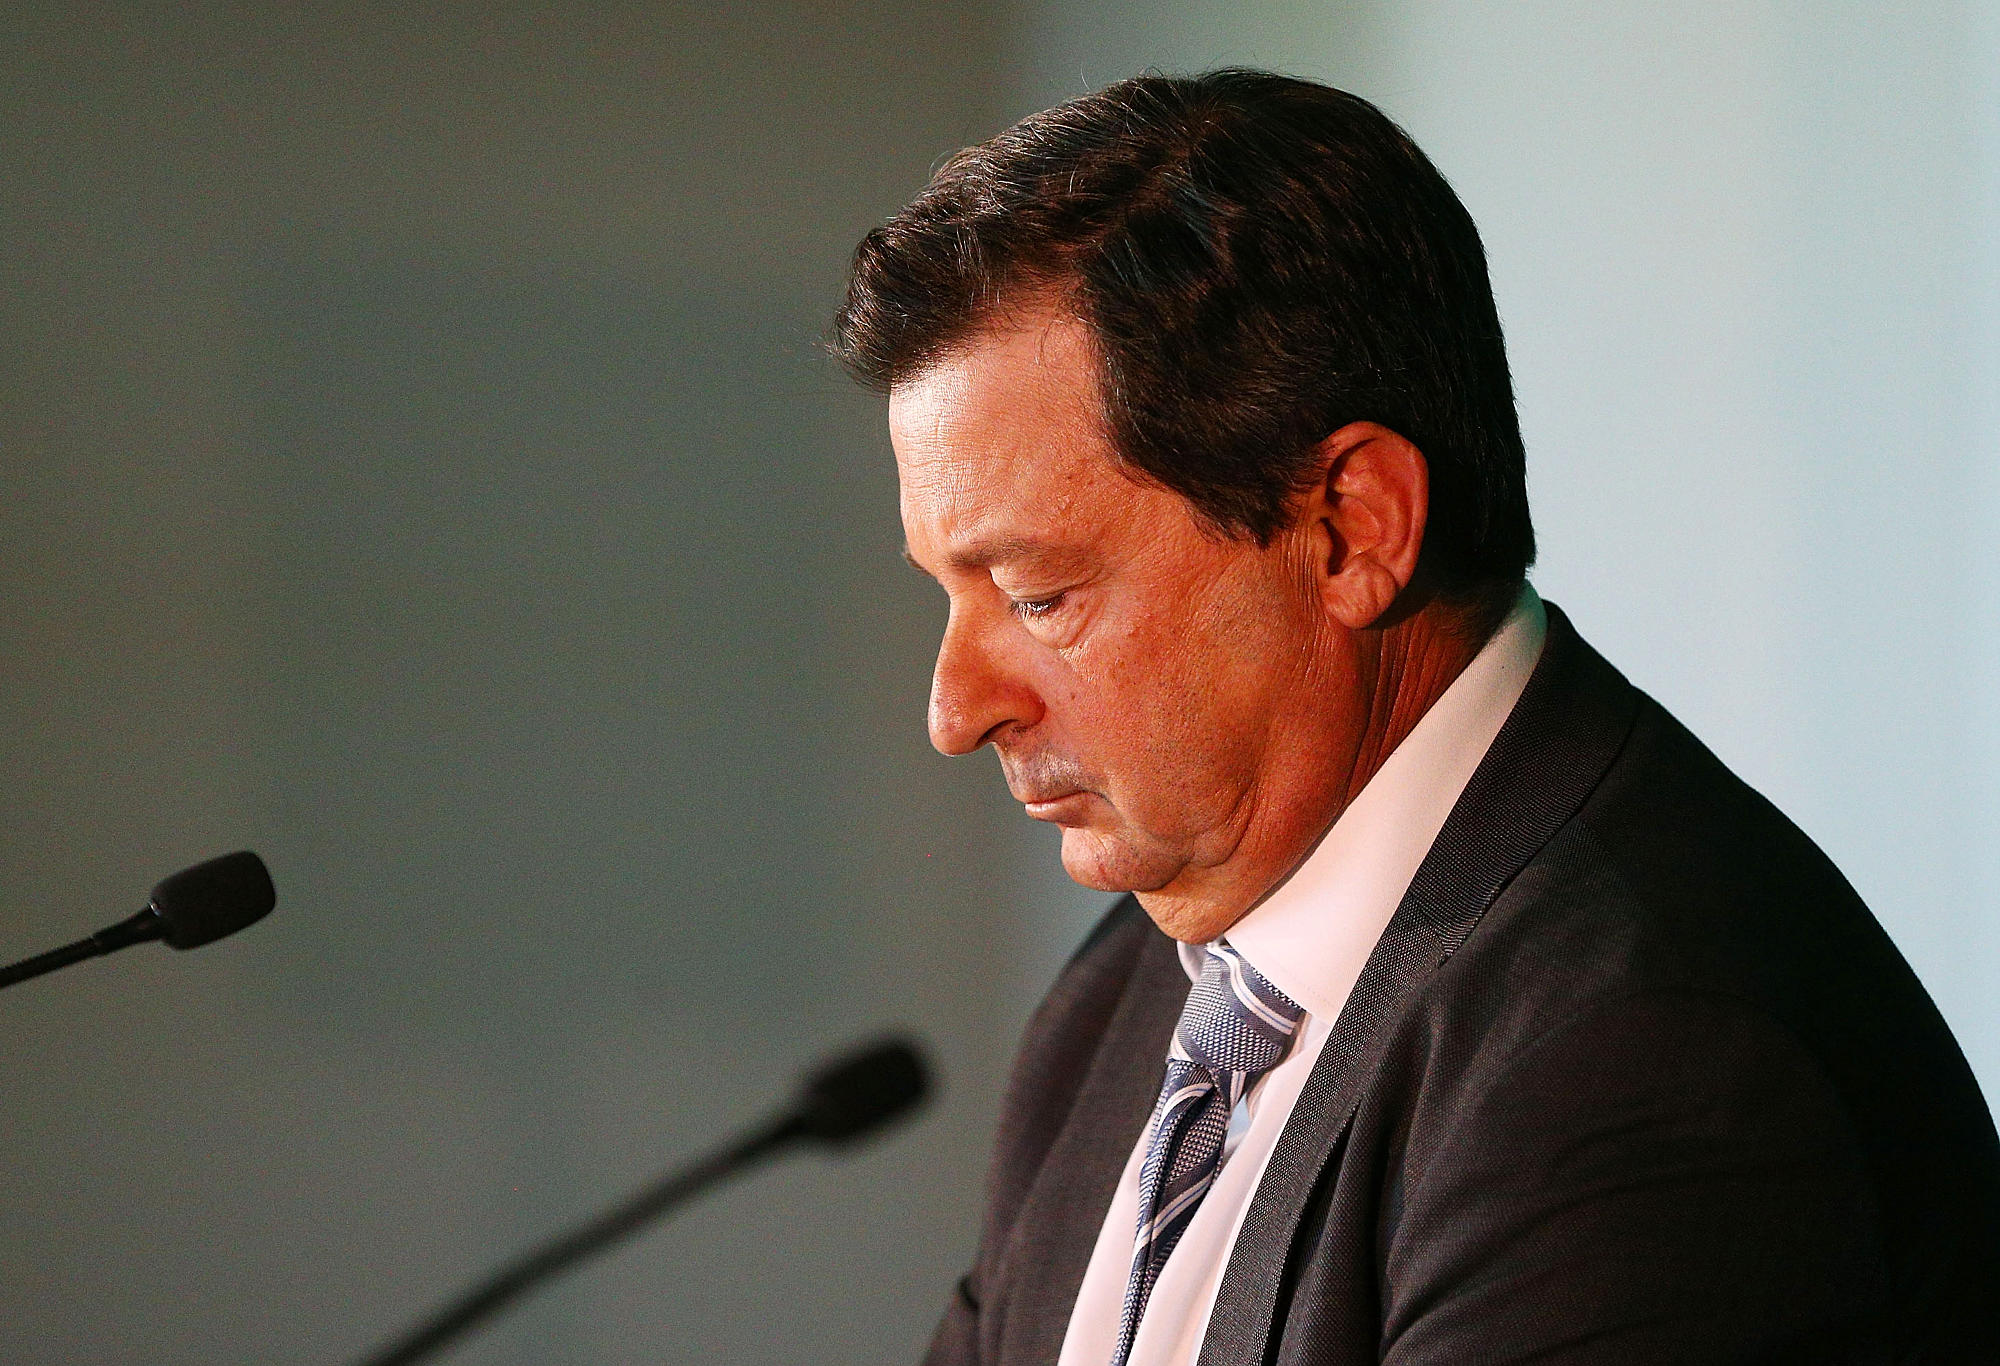 David Peever speaks at a Cricket Australia press conference.